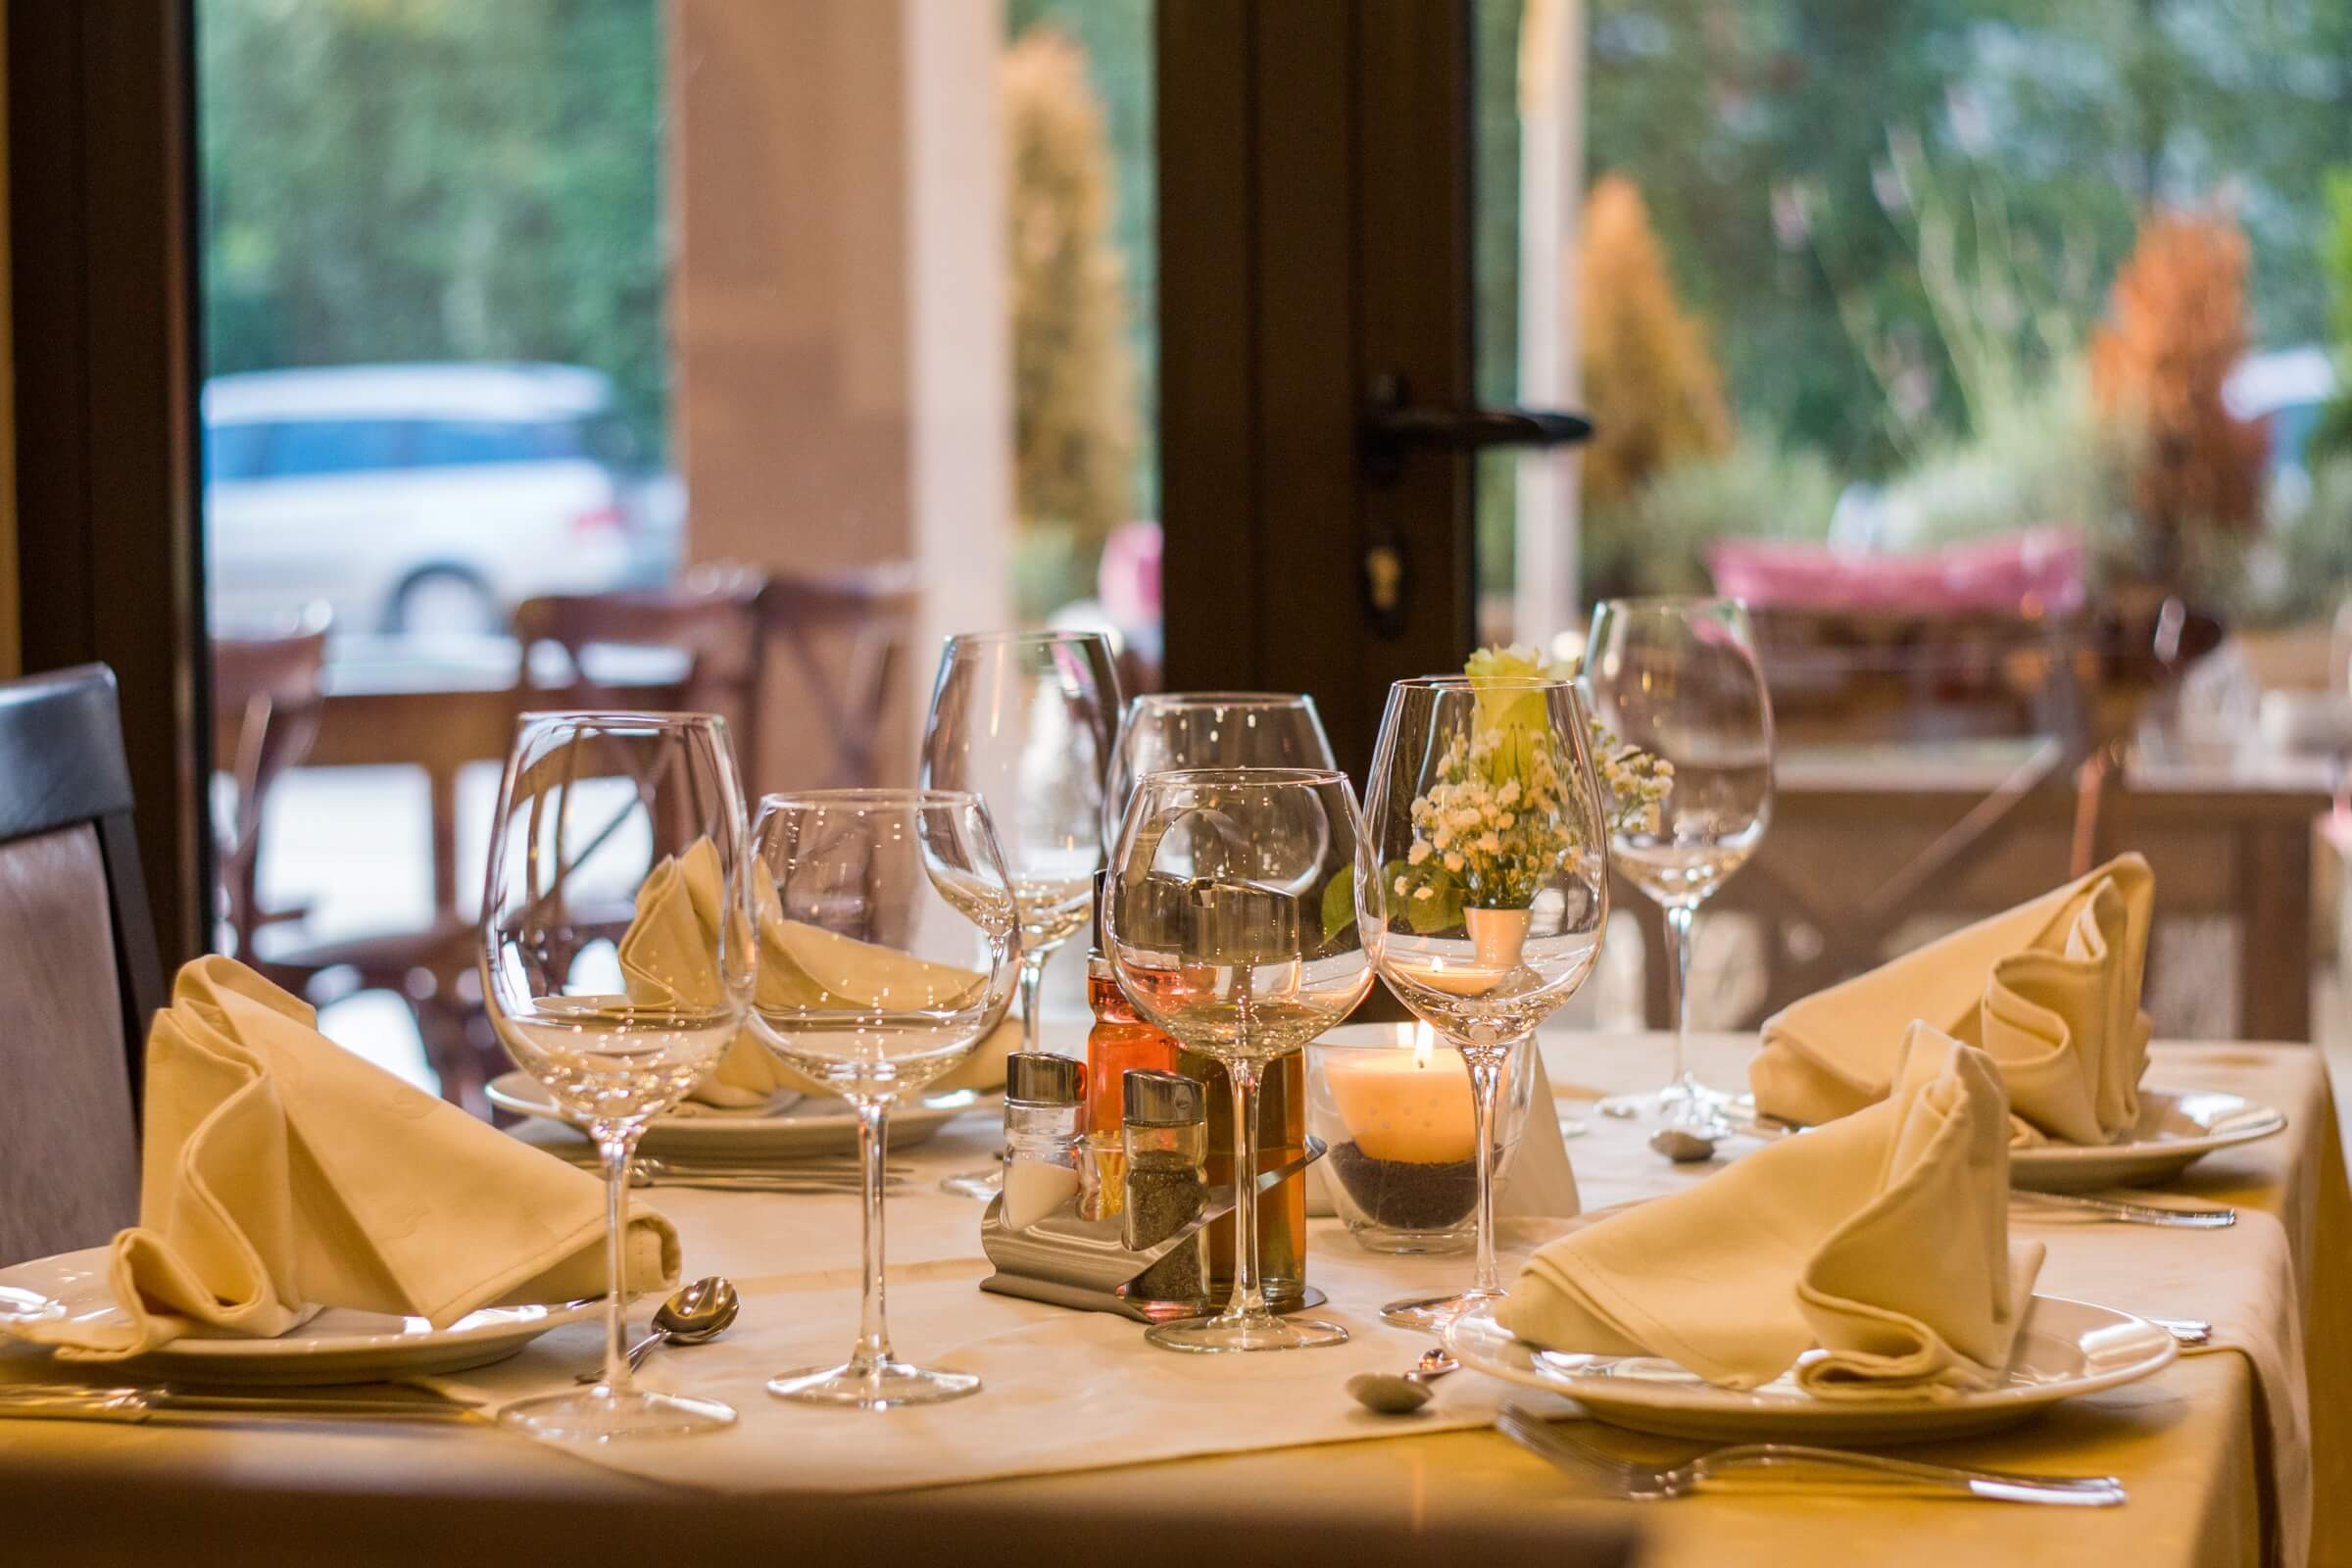 Hospitality industry must be customer centric